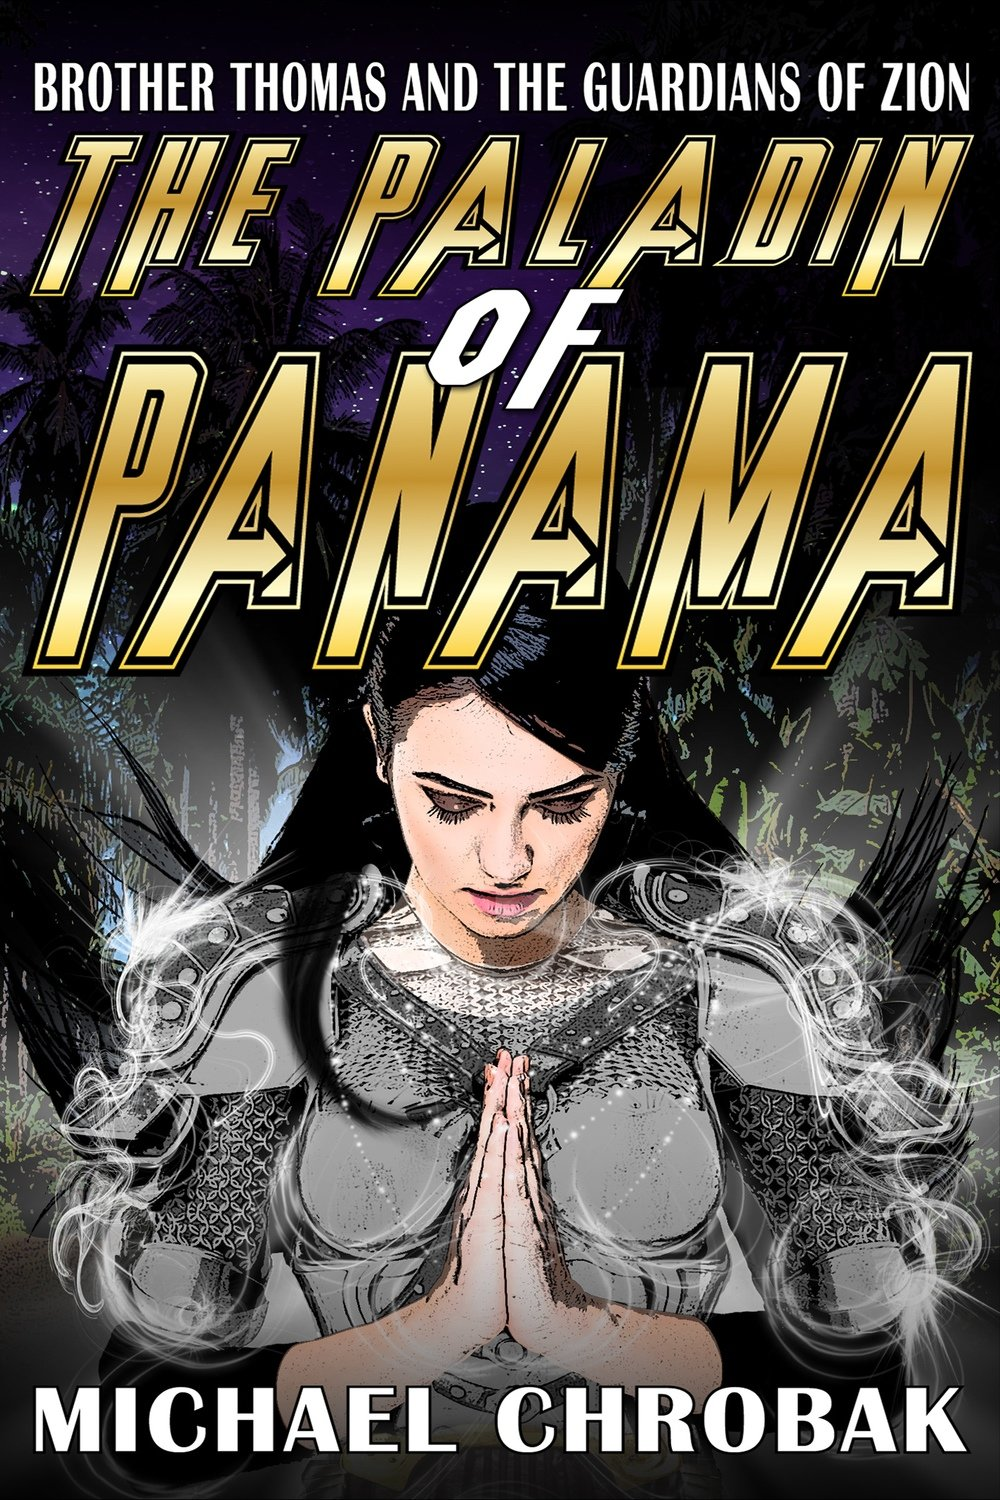 Book Two - Paladin of Panama